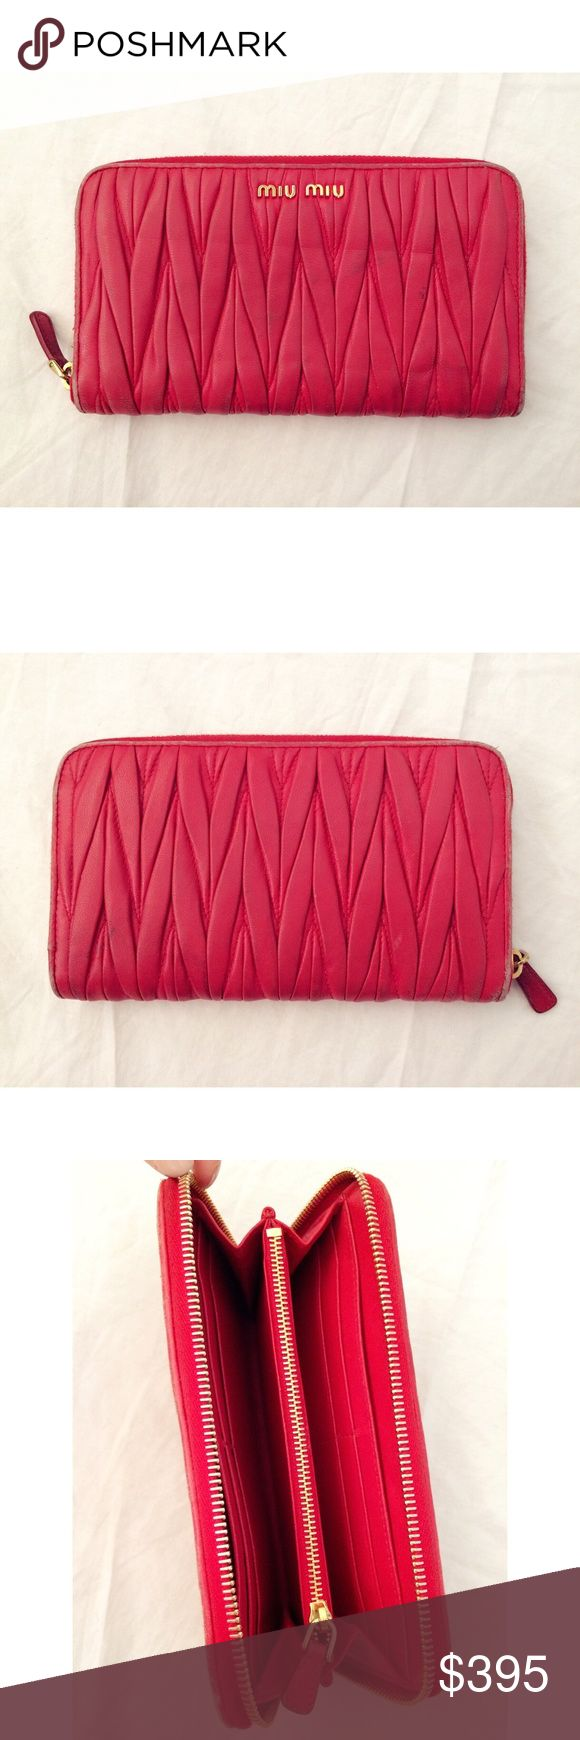 """Miu Miu Matelasse Zippy Wallet Miu Miu matelasse gathered buttery soft nappa leather zip around zippy wallet.  Preowned; shows signs of wear along the edges.  True red color with gold logo / zipper.  Measures 7.5"""" x 1"""" x 4.5"""".  No trades.  {box35} Miu Miu Bags Wallets"""